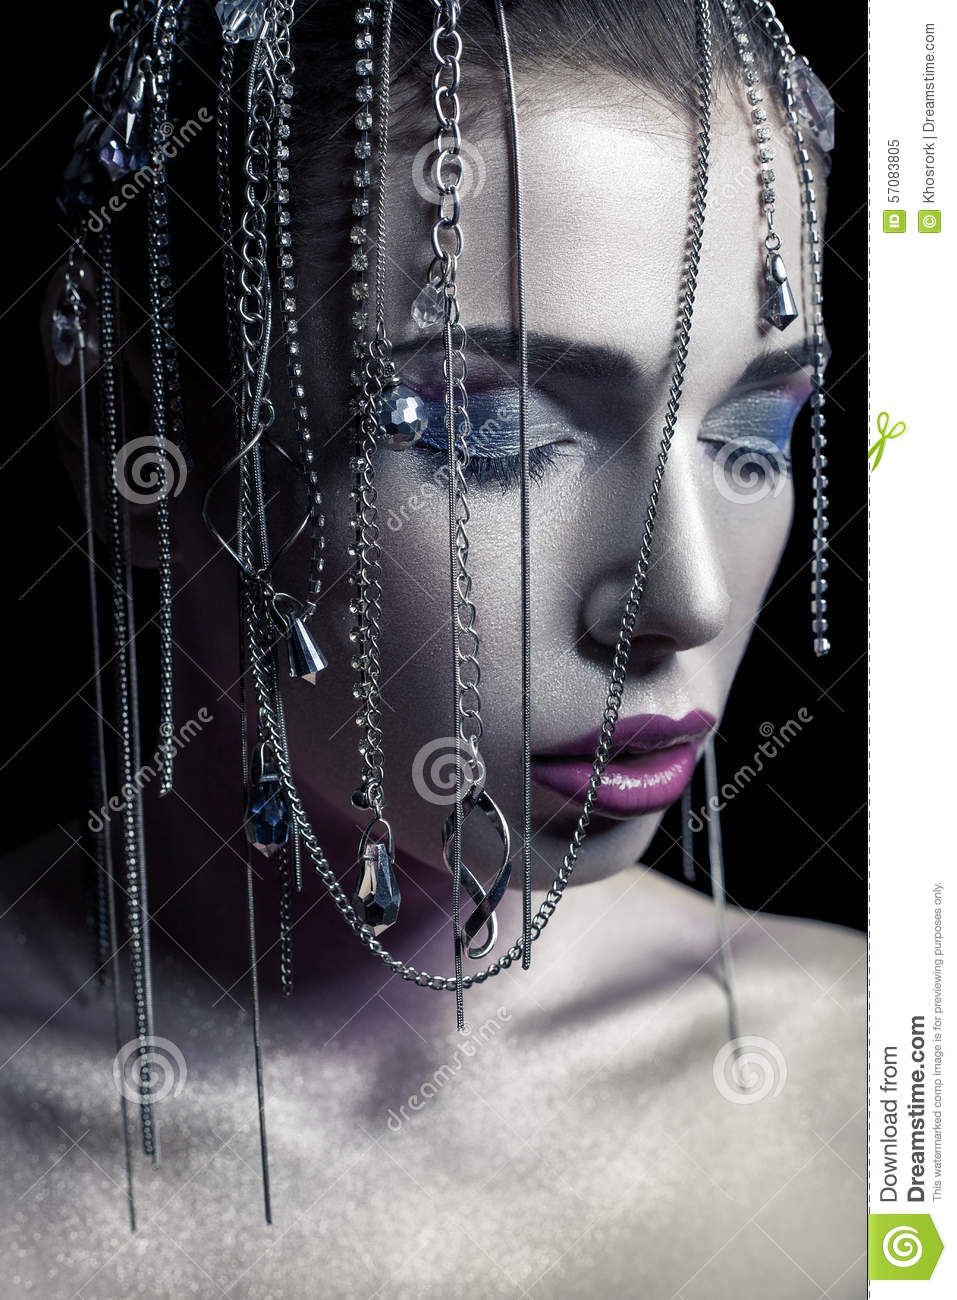 Accessories, Jewelry. Glamour Fashion Beauty Model Stock ...